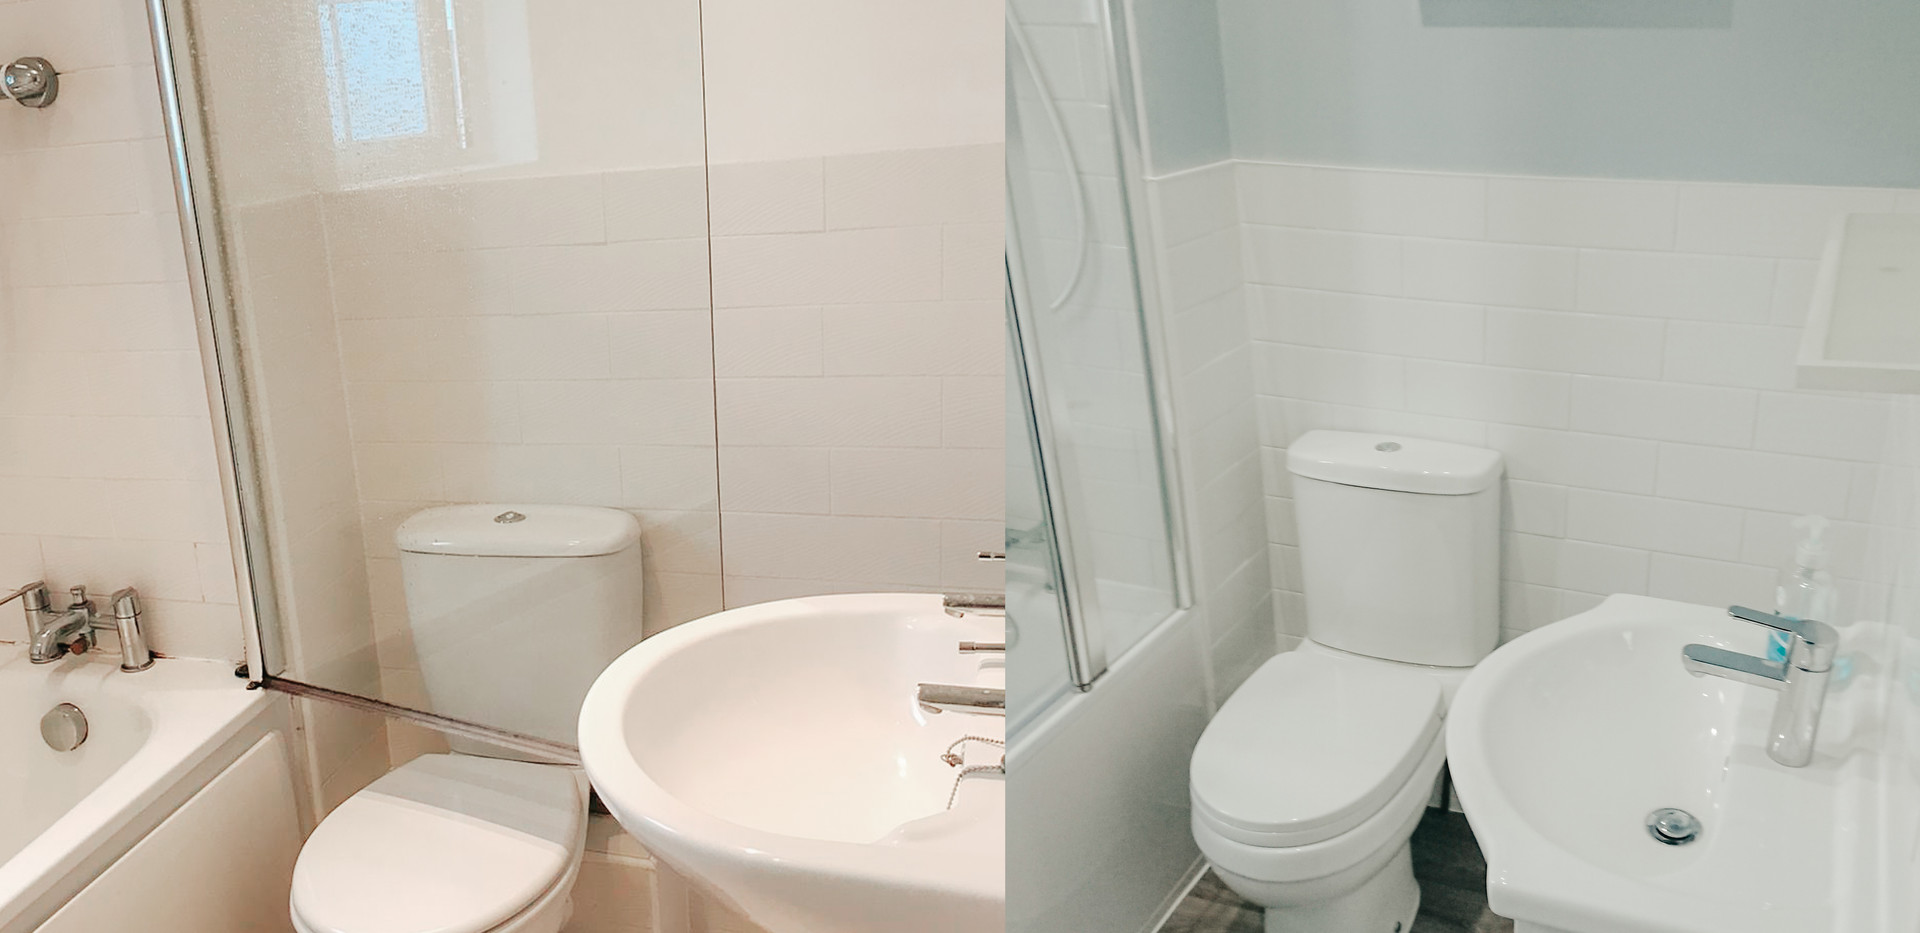 old bathroom suite refurbished in white grey and blue